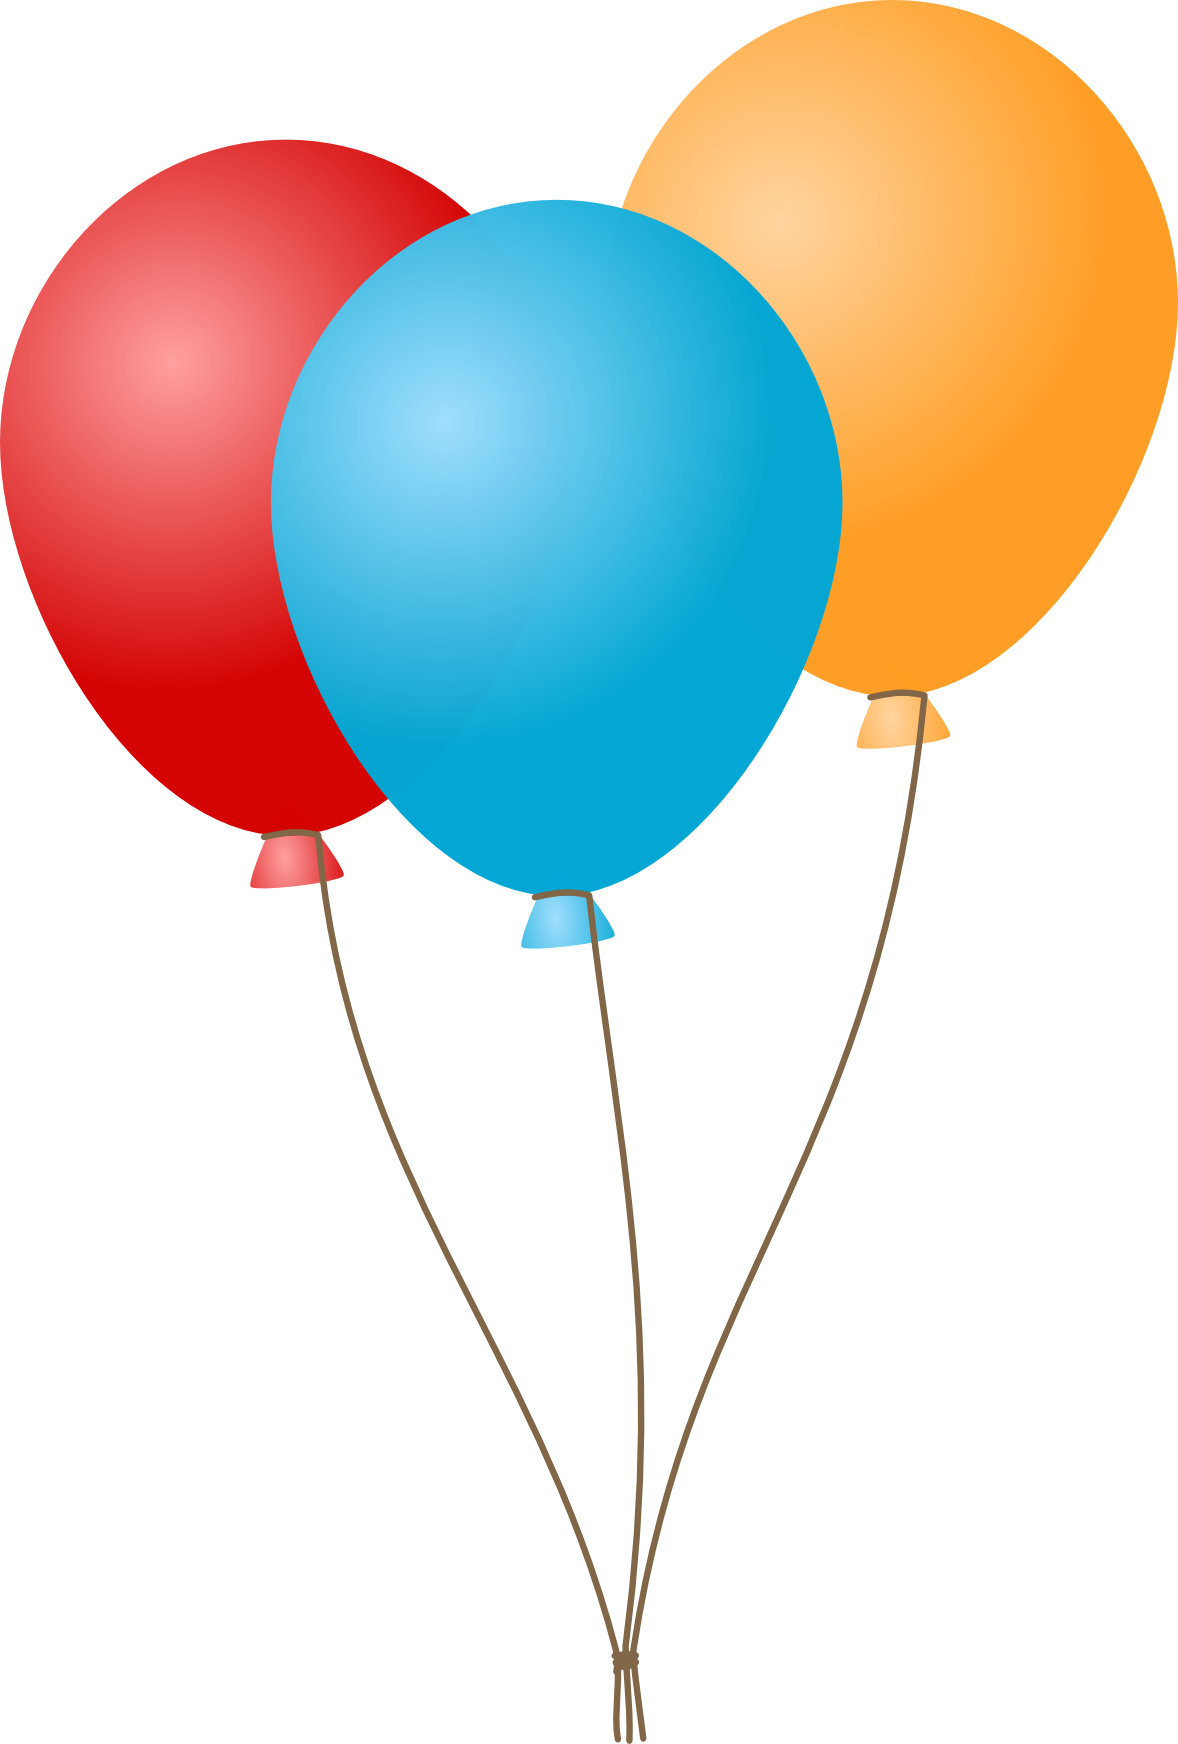 1178x1744 Balloon Png Images, Free Picture Download With Transparency